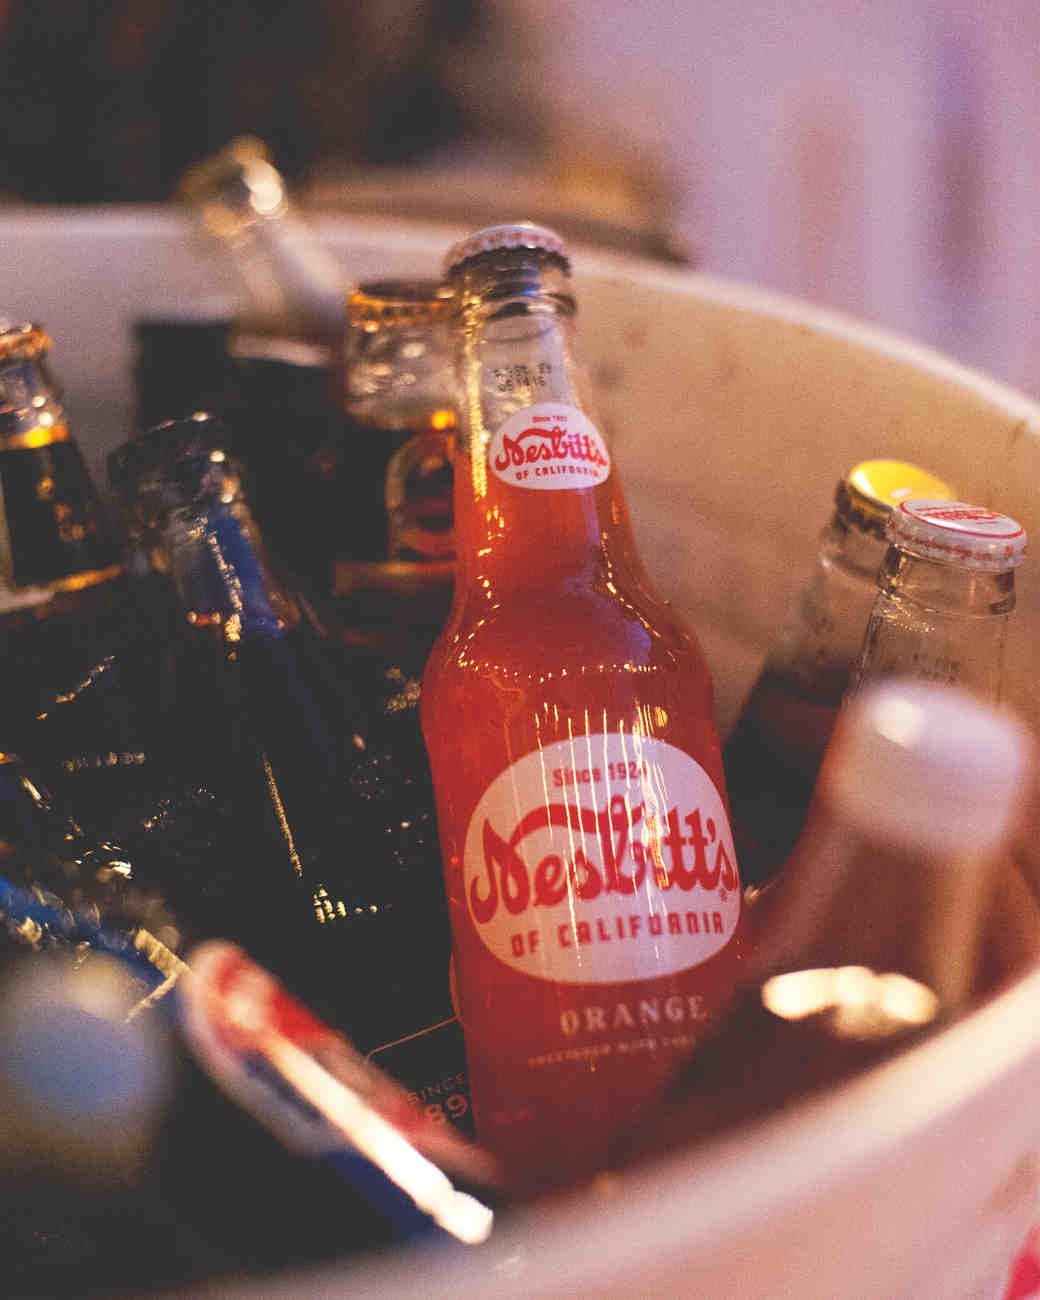 claire-thomas-bachelorette-party-outdoor-movie-night-old-fashioned-soda-0415.jpg